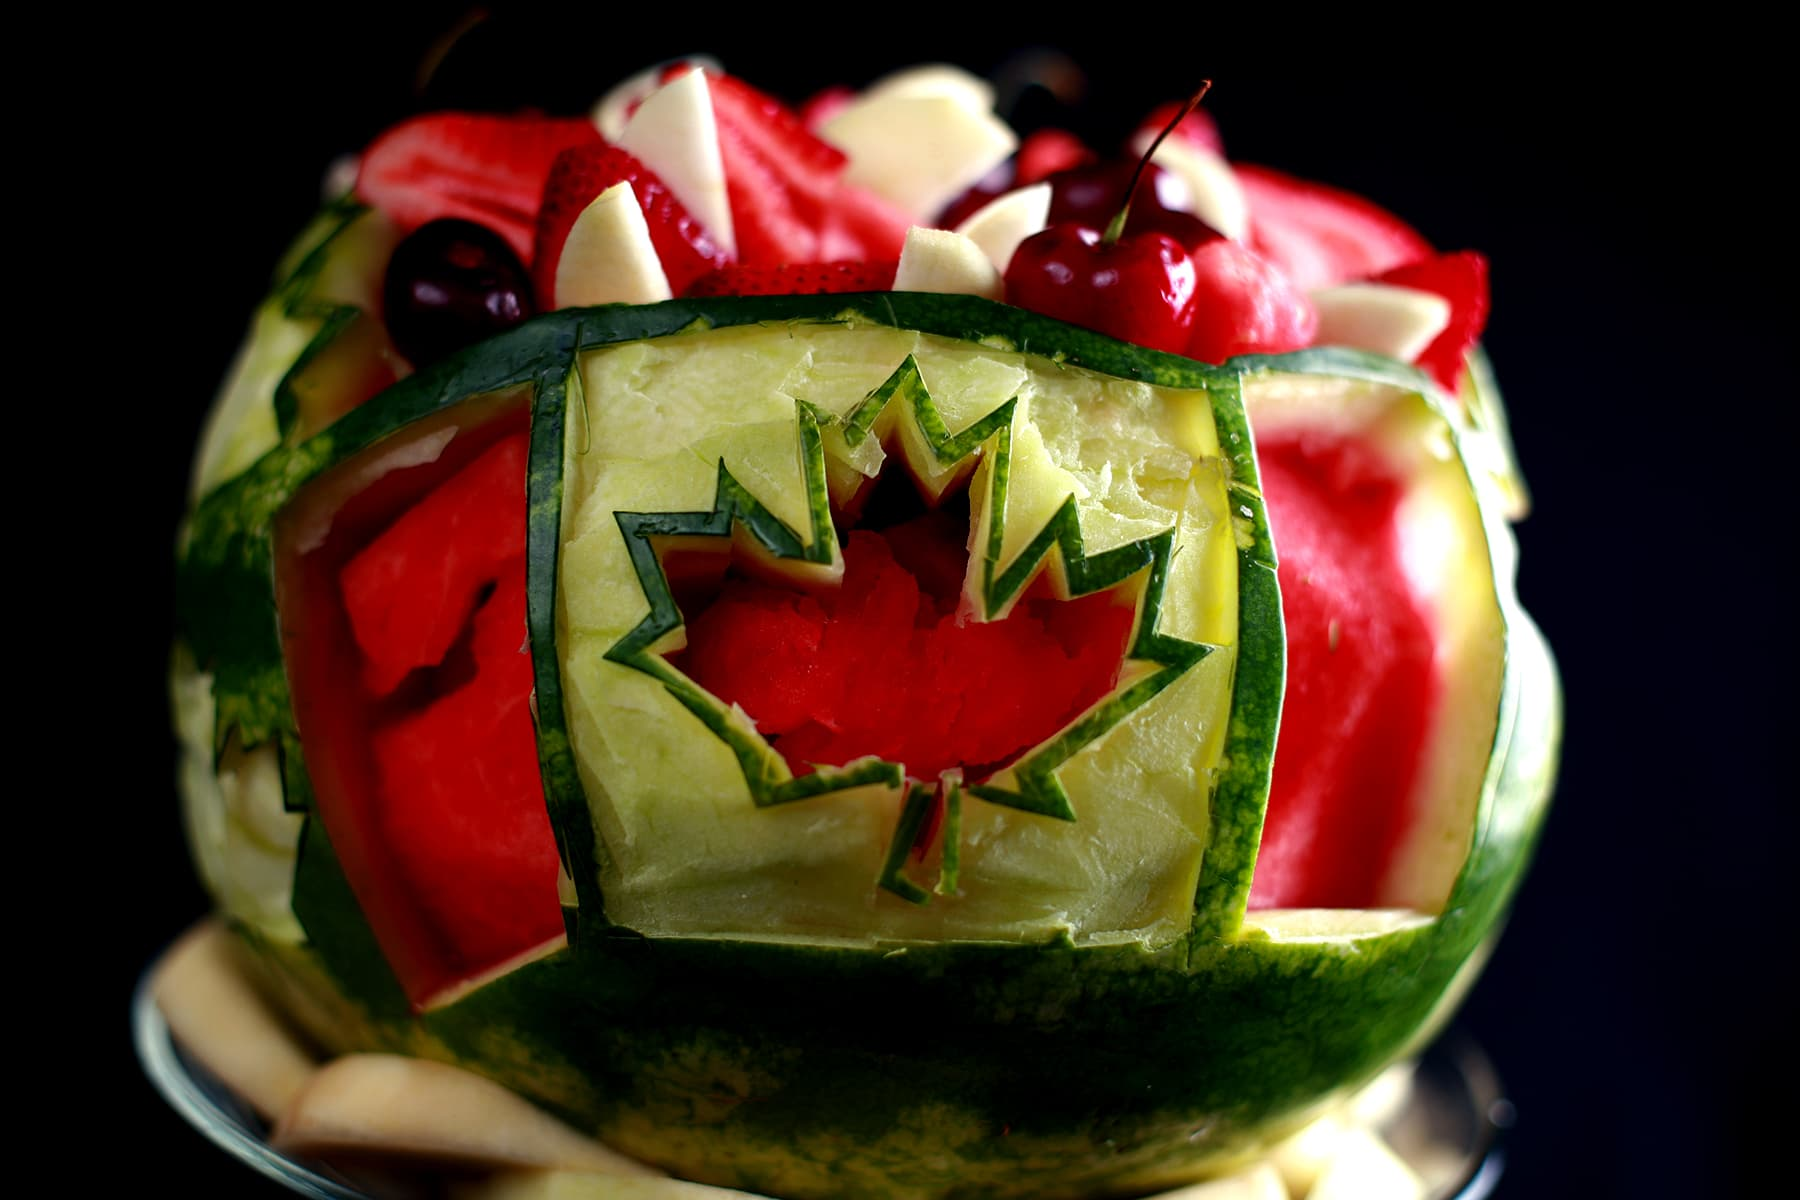 A Canada Day, Canadian Themed Watermelon Bowl. A Canadian flag is carved into the watermelon, which is filled with red and white fruit.